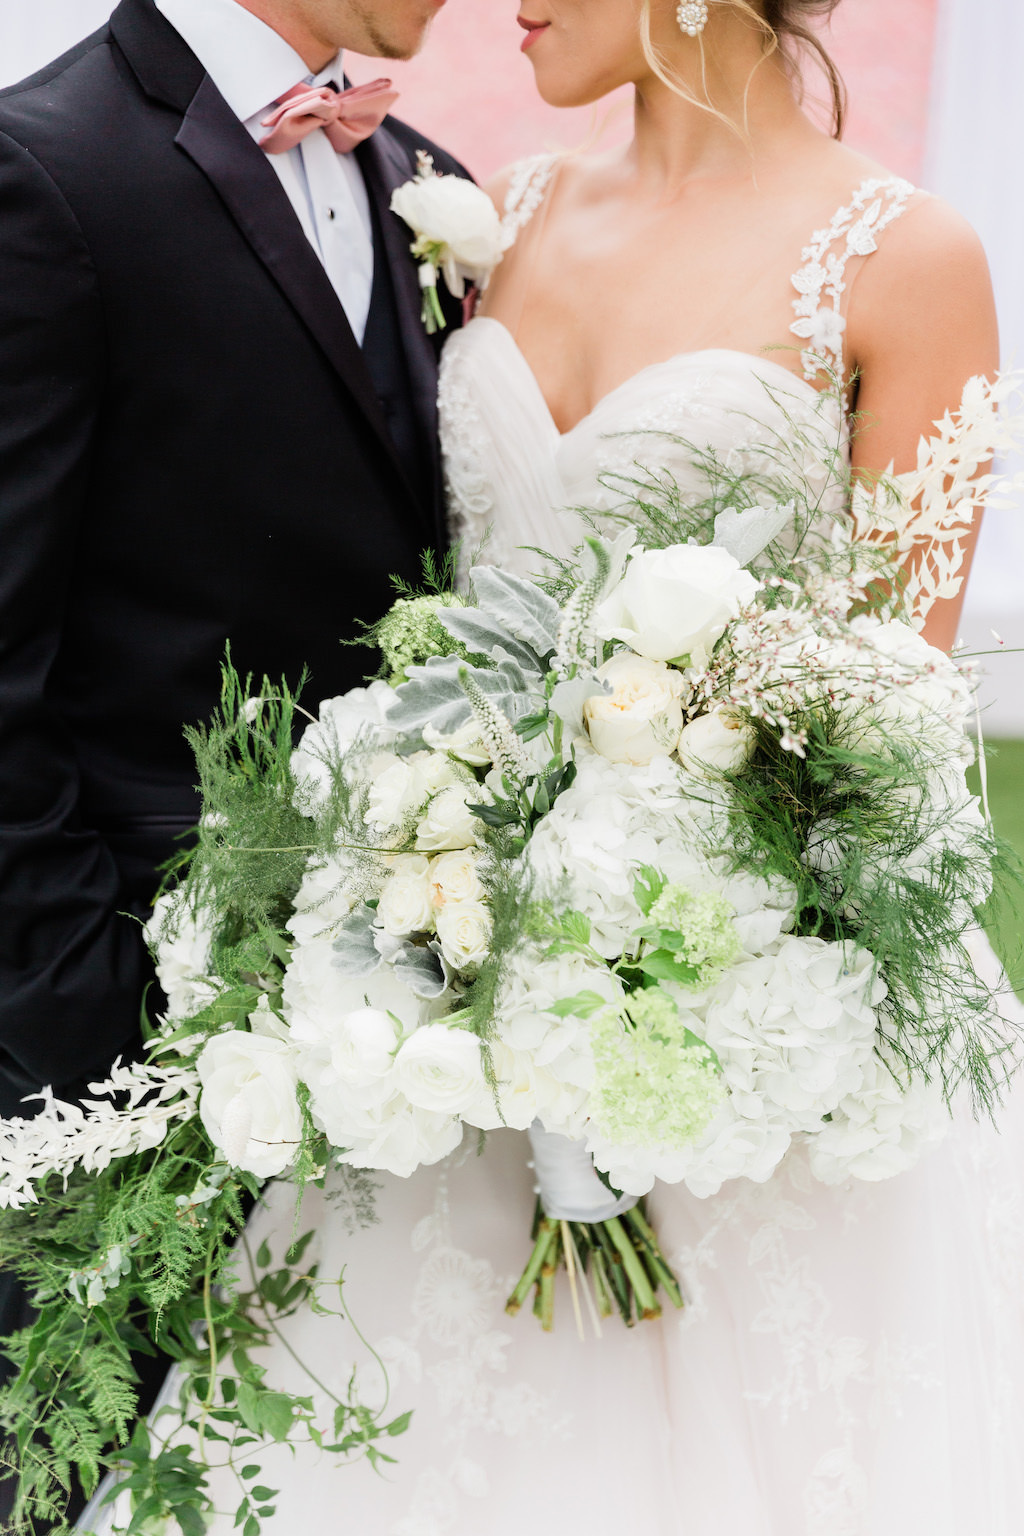 Modern, Elegant Florida Bride and Groom, Luxurious White Mixed Stem Floral Bouquet with Whimsical Greenery   Tampa Bay Wedding Florist Gabro Event Services   Tampa Bay Hair and Makeup Artists Femme Akoi   Tampa Bay Couture Wedding Dress Boutique Isabel O'Neil Bridal Collection